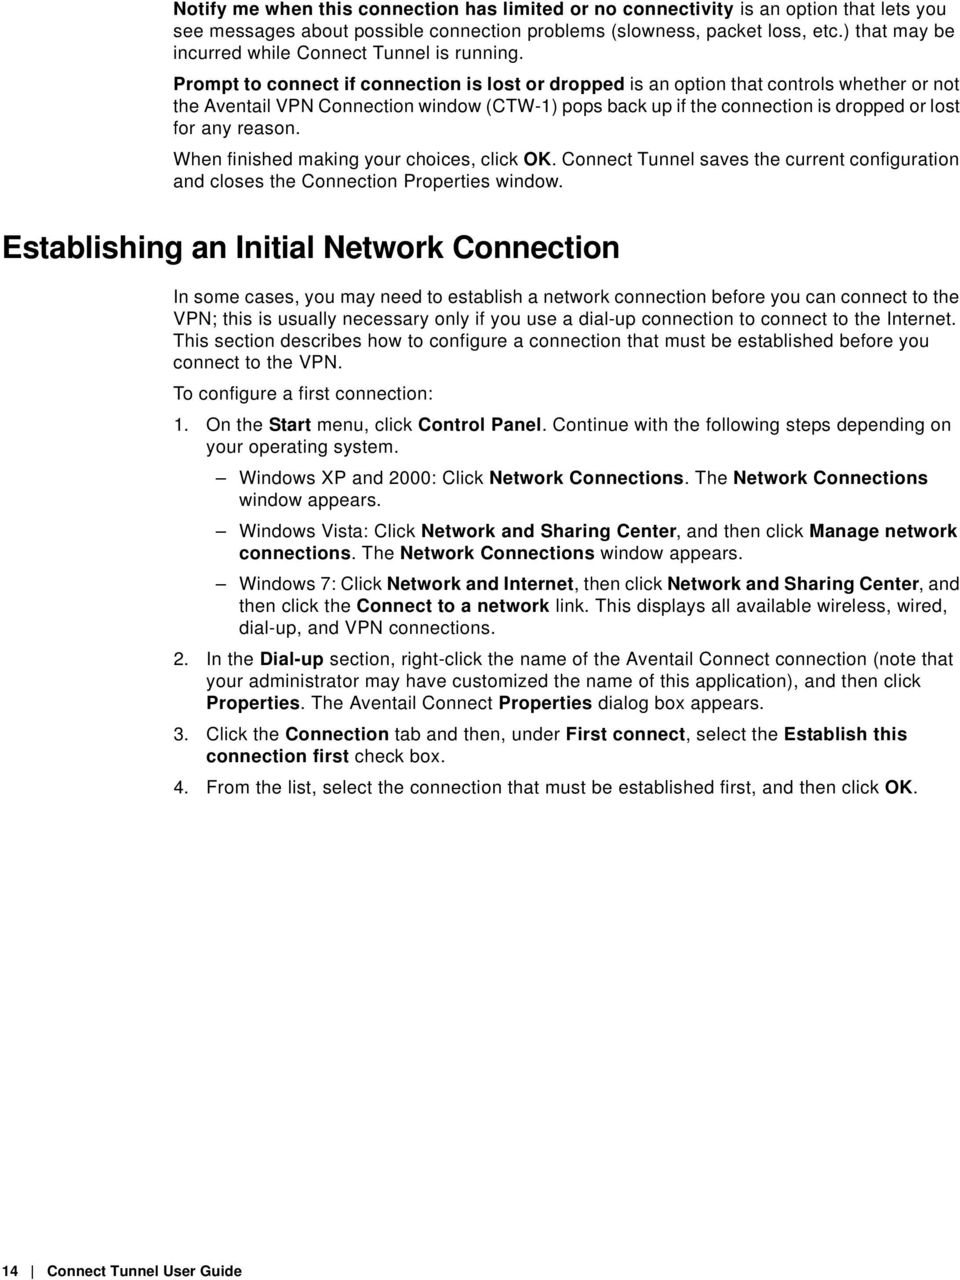 Prompt to connect if connection is lost or dropped is an option that controls whether or not the Aventail VPN Connection window (CTW-1) pops back up if the connection is dropped or lost for any